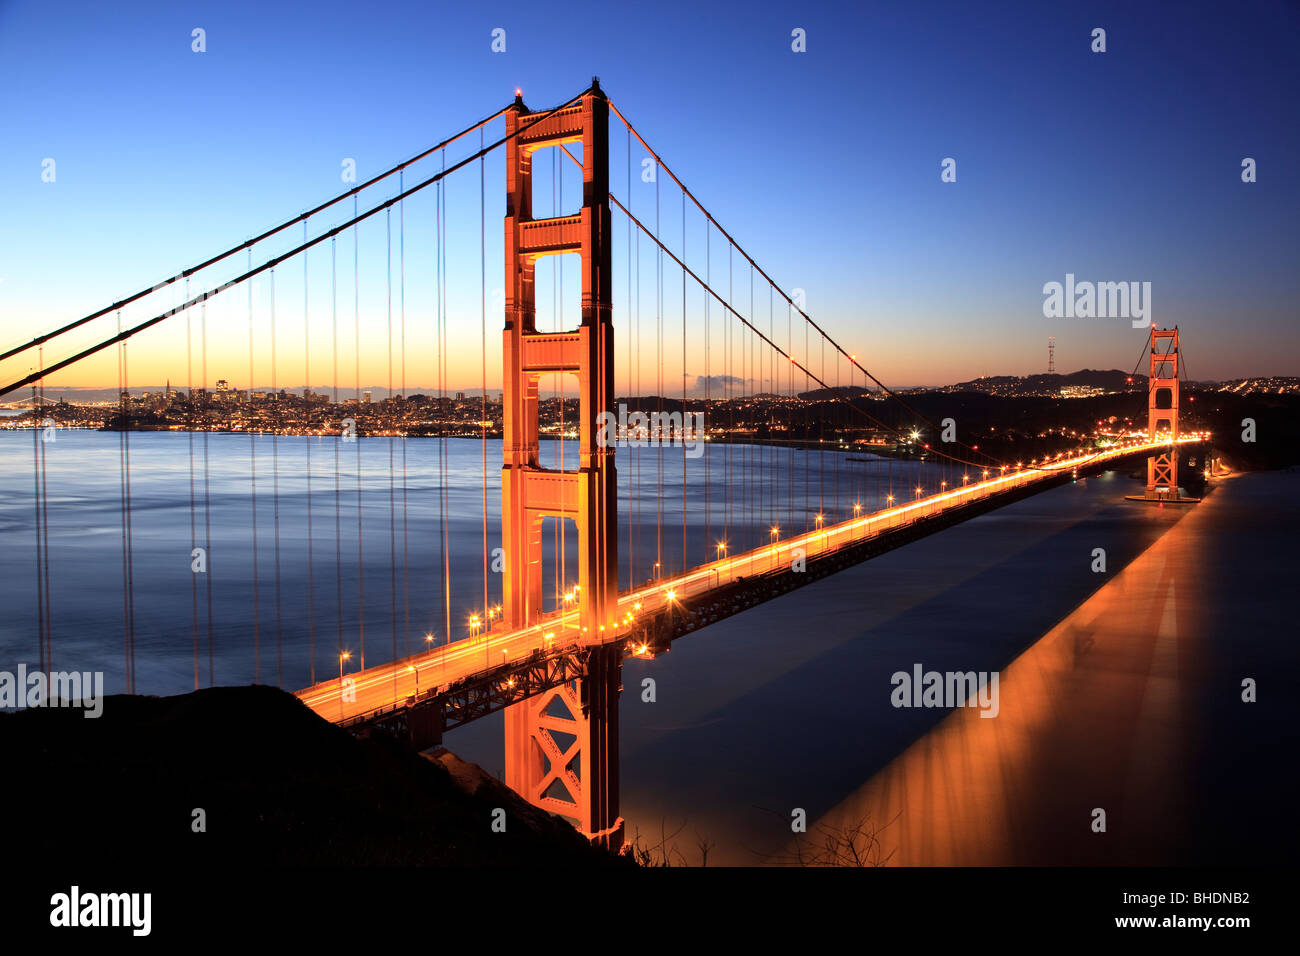 Golden gate Bridge and San Francisco Skyline viewed at dusk - Stock Image